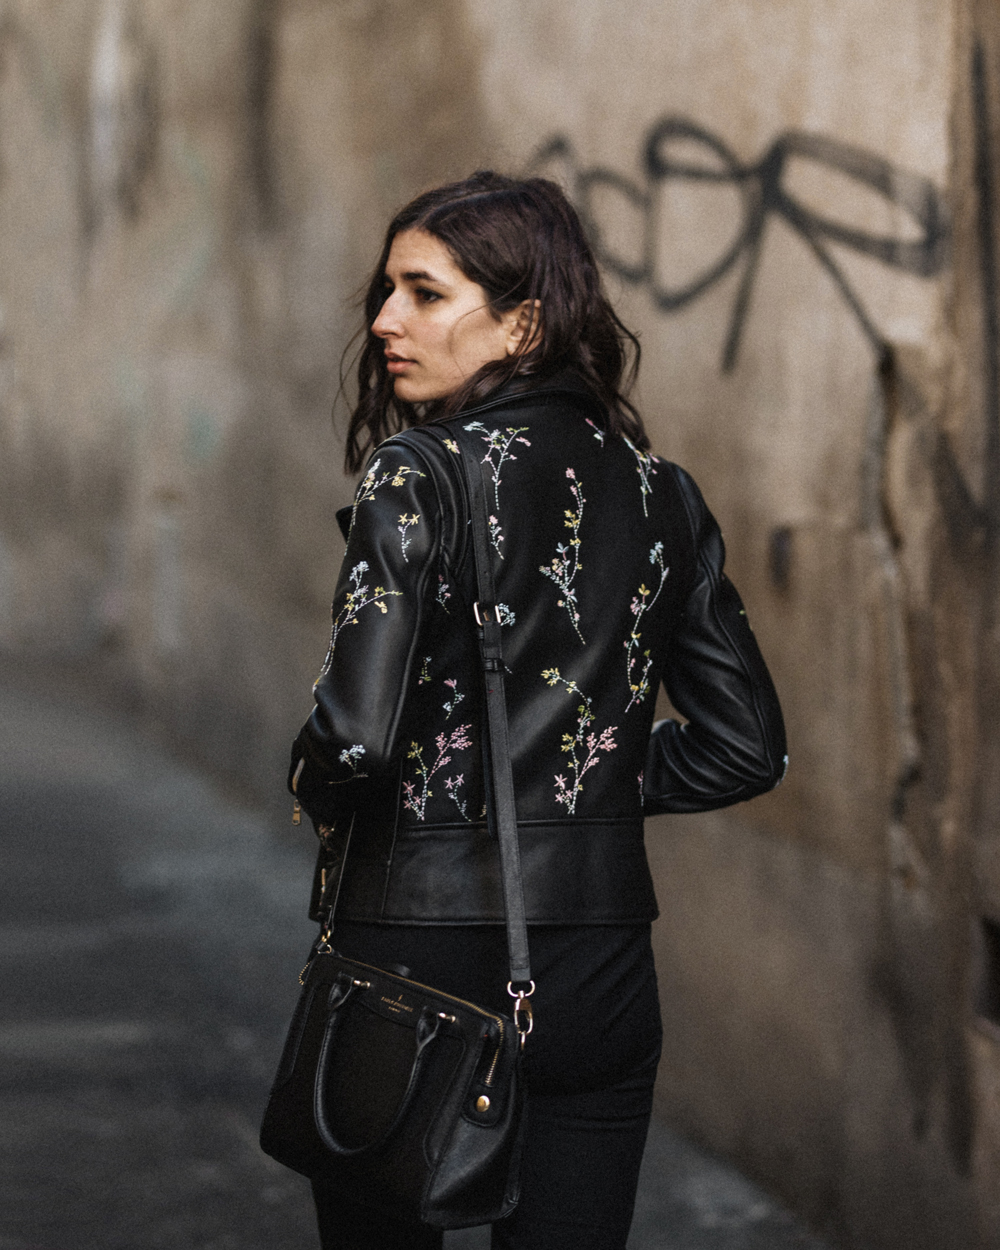 A cashmere sweater and an embroidered leather jacket